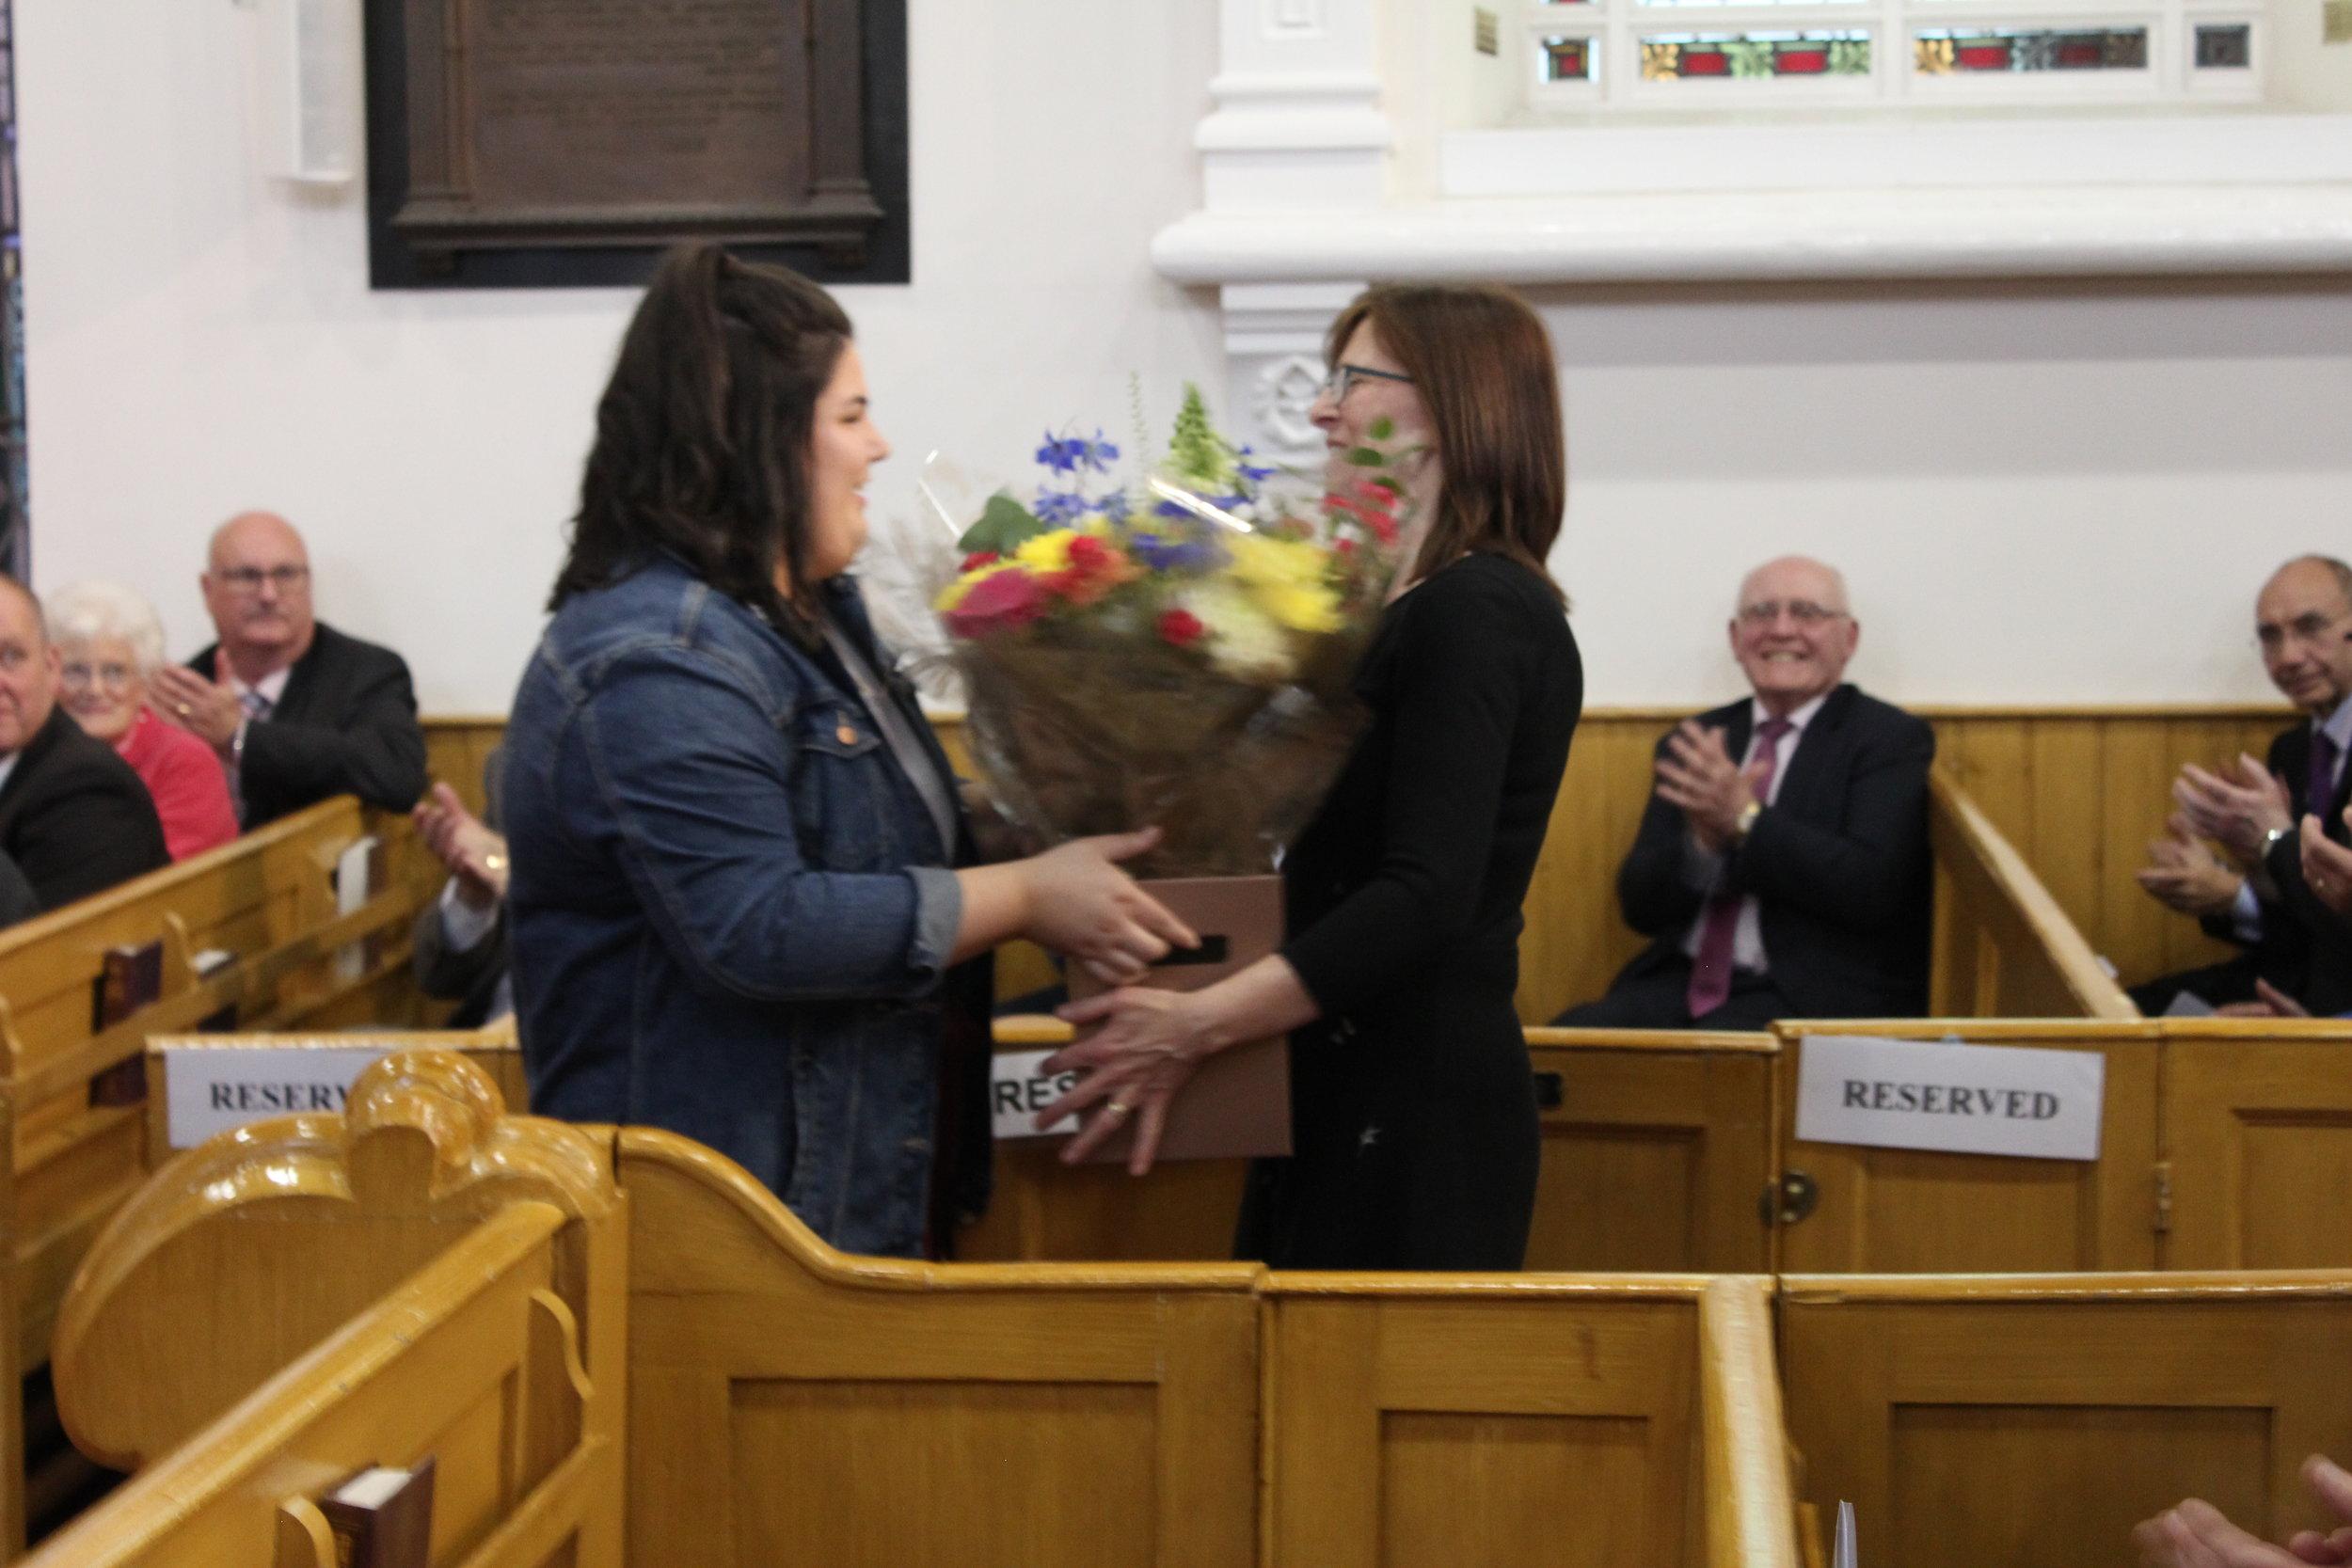 Natasha Hamilton presents Mrs Crowe with flowers.